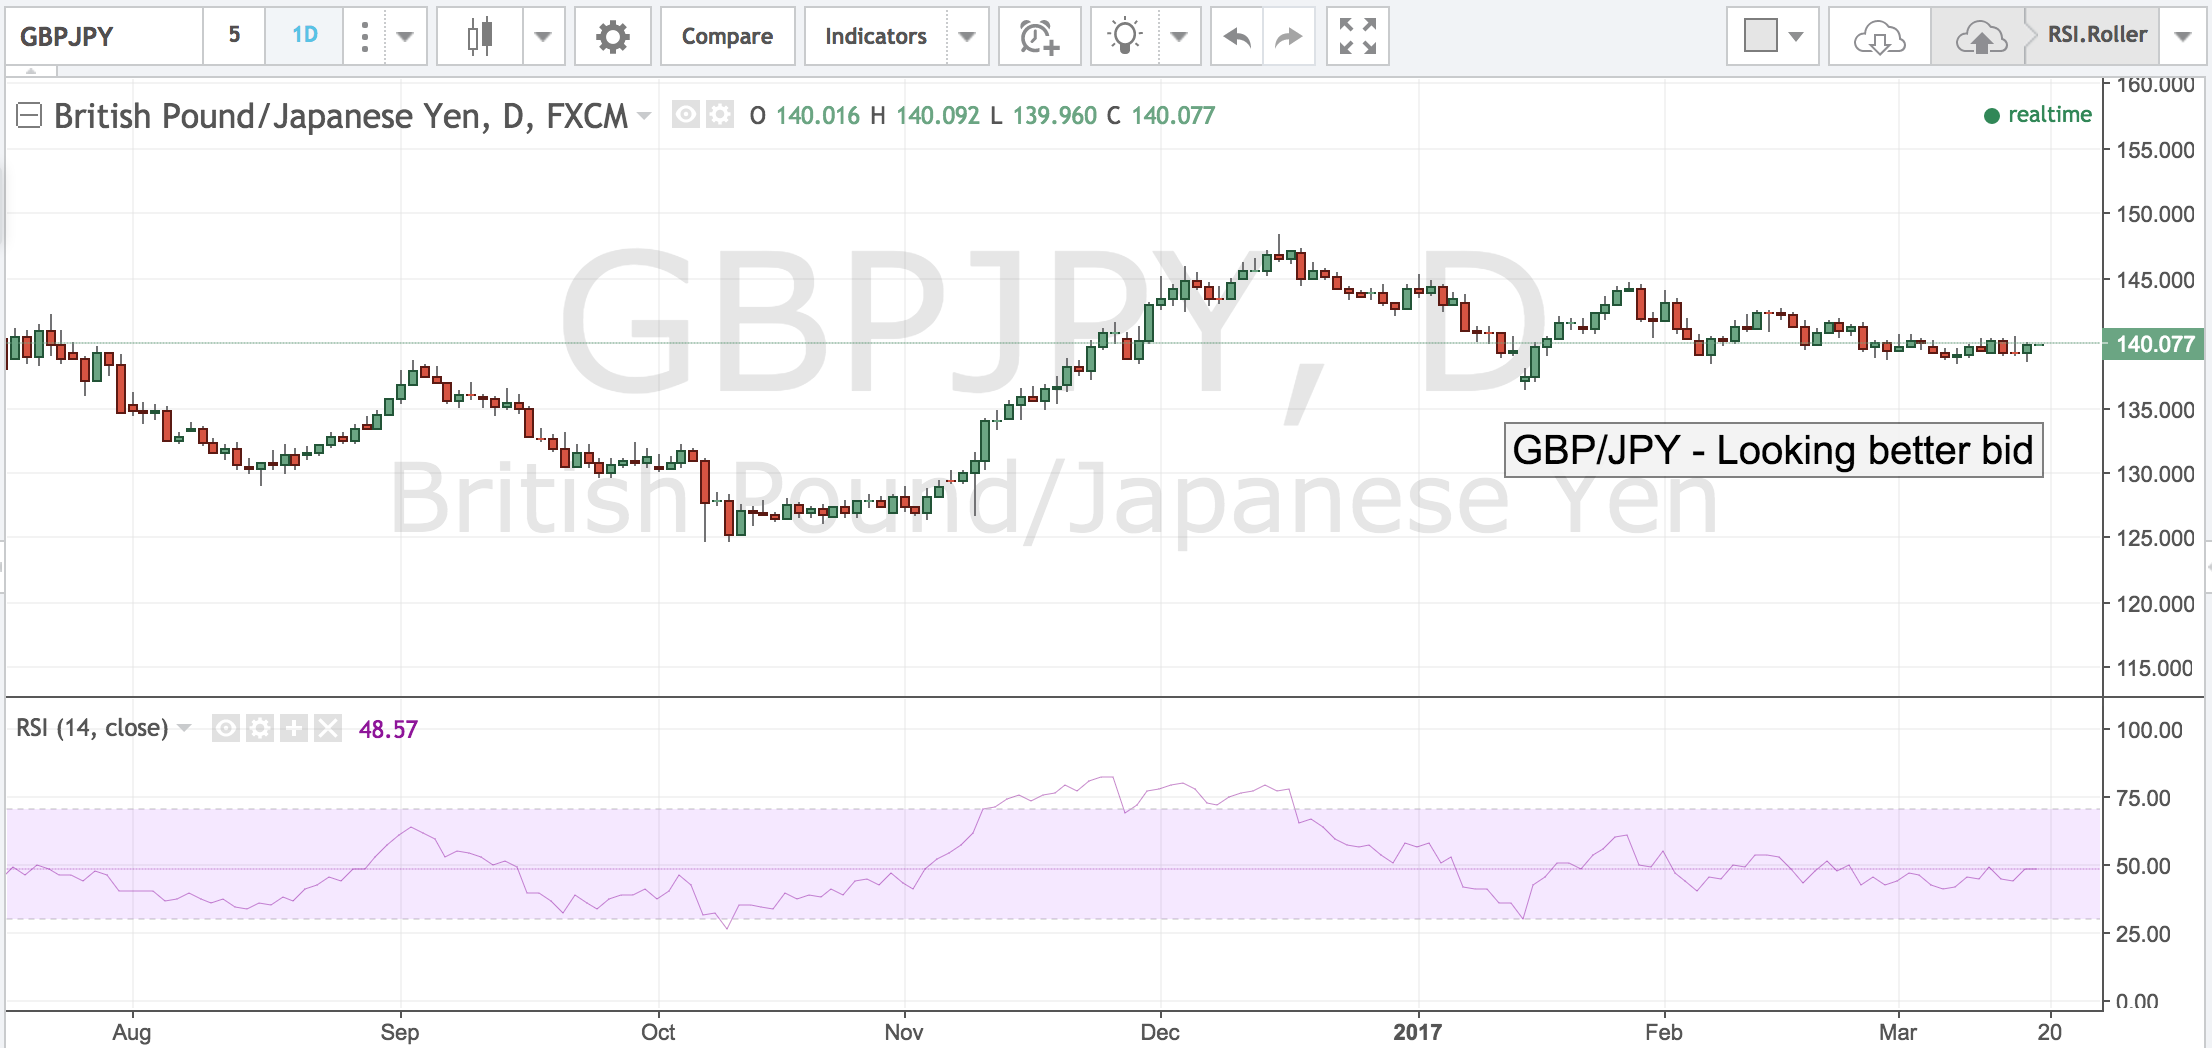 GBPJPY – Looking Better Bid